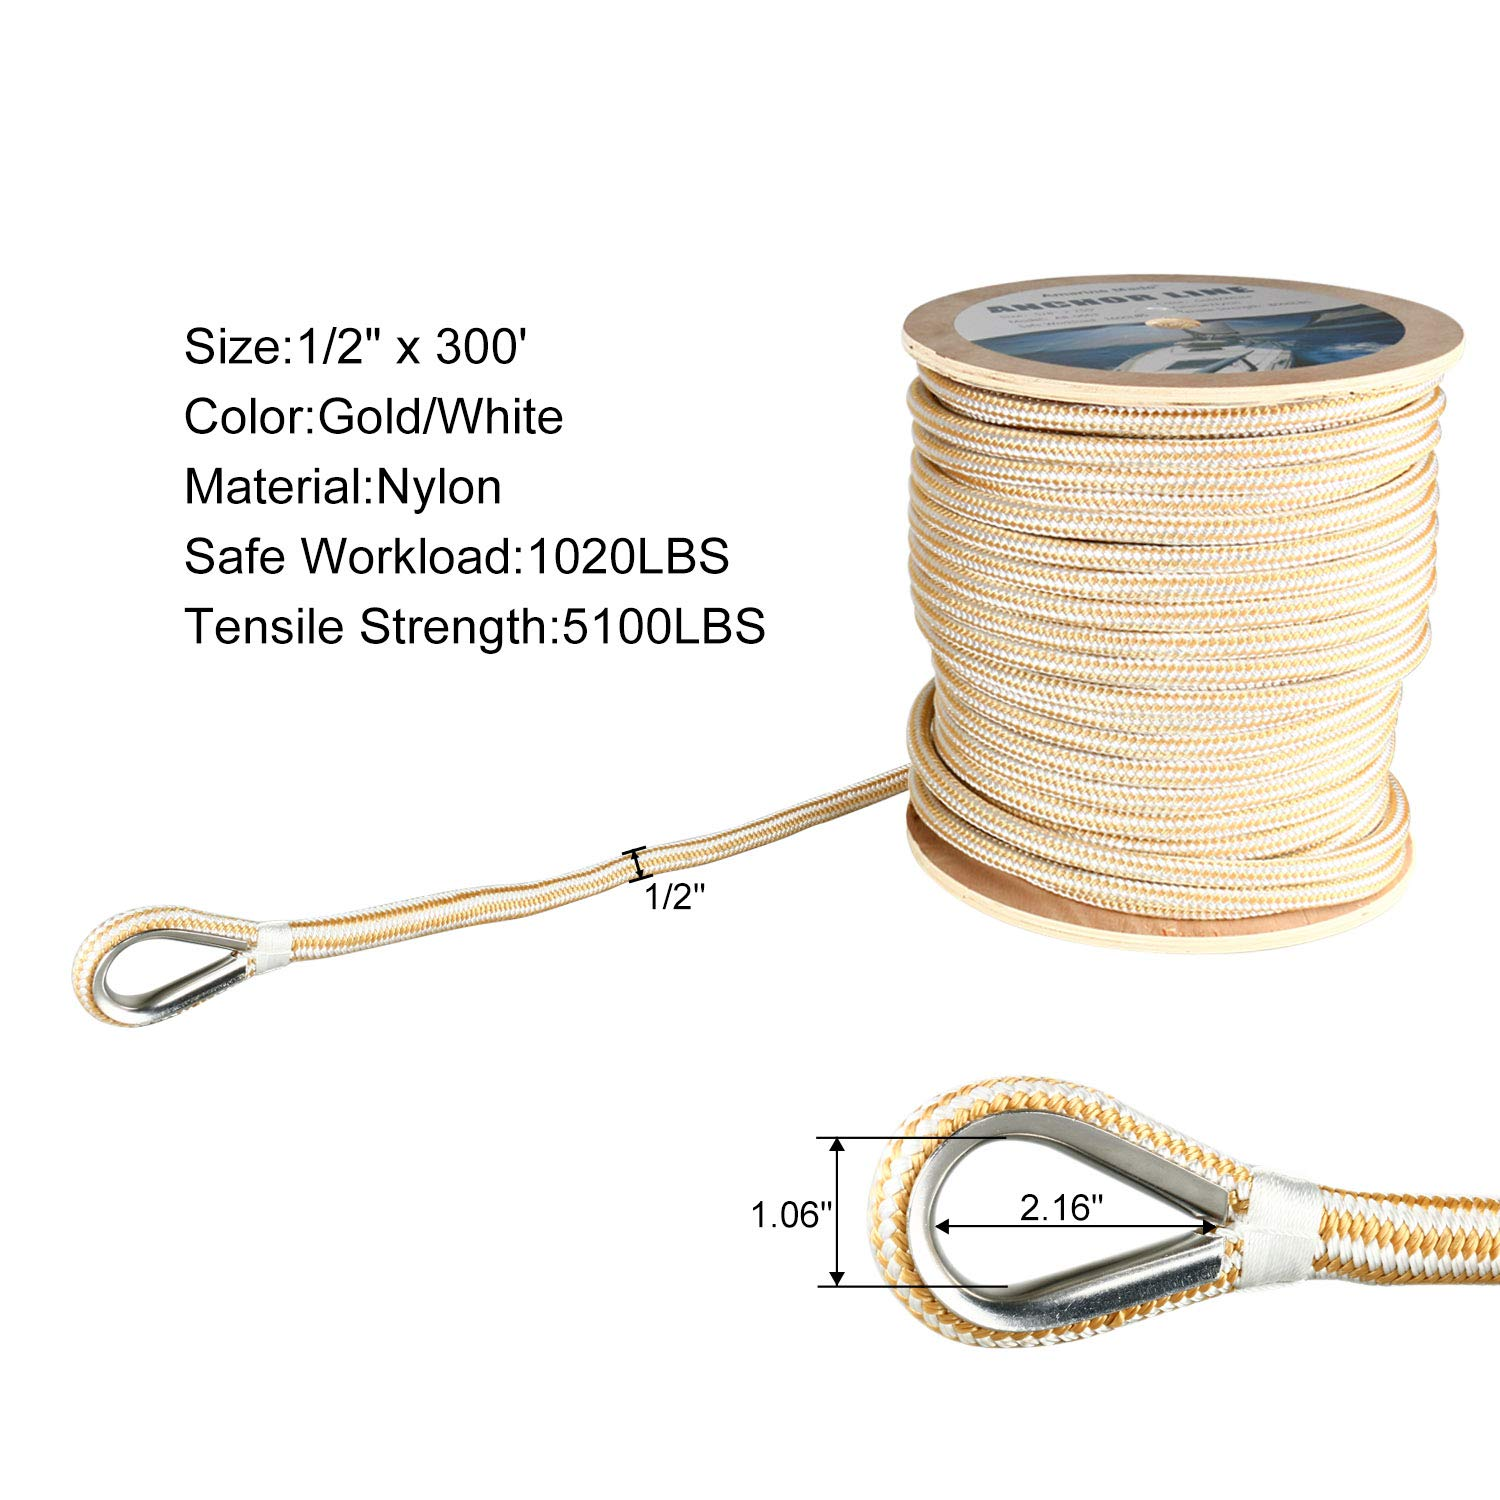 Amarine Made Heavy Duty Double Braid Nylon Anchor Line with Stainless Steel Thimble-White/Gold (1/2'' x 300')